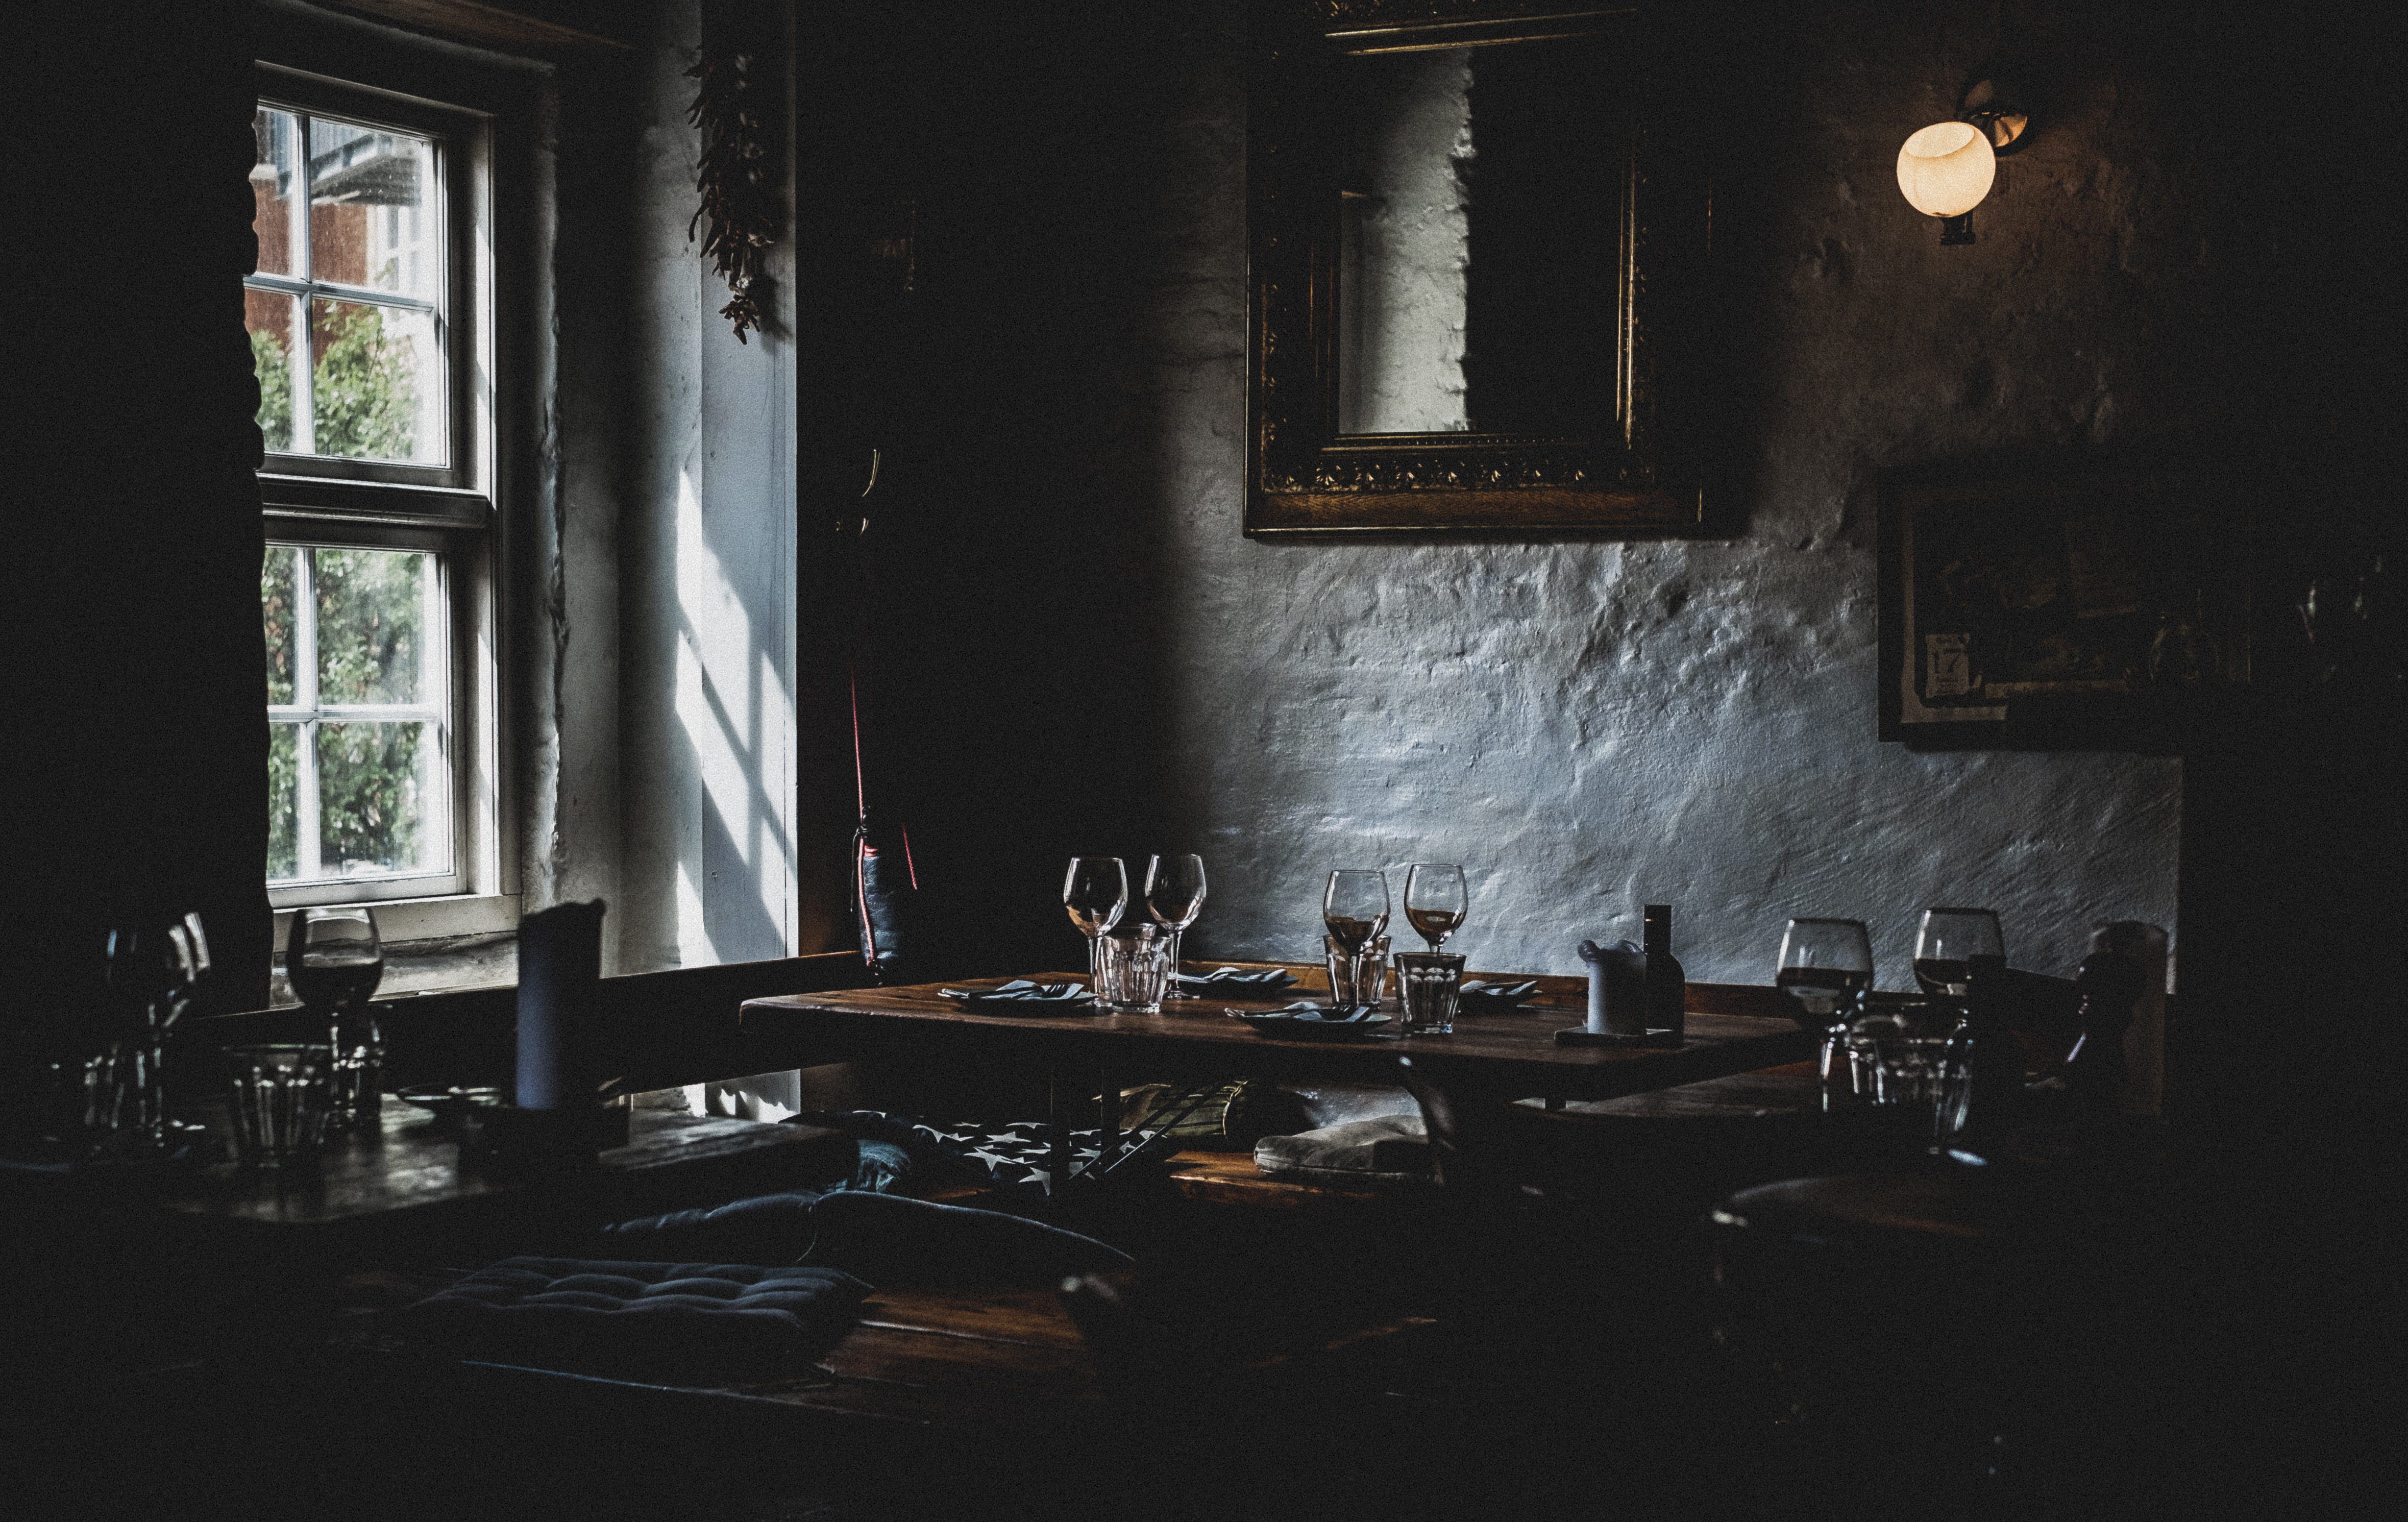 A table with plates and wine glasses in a corner of a dark restaurant room